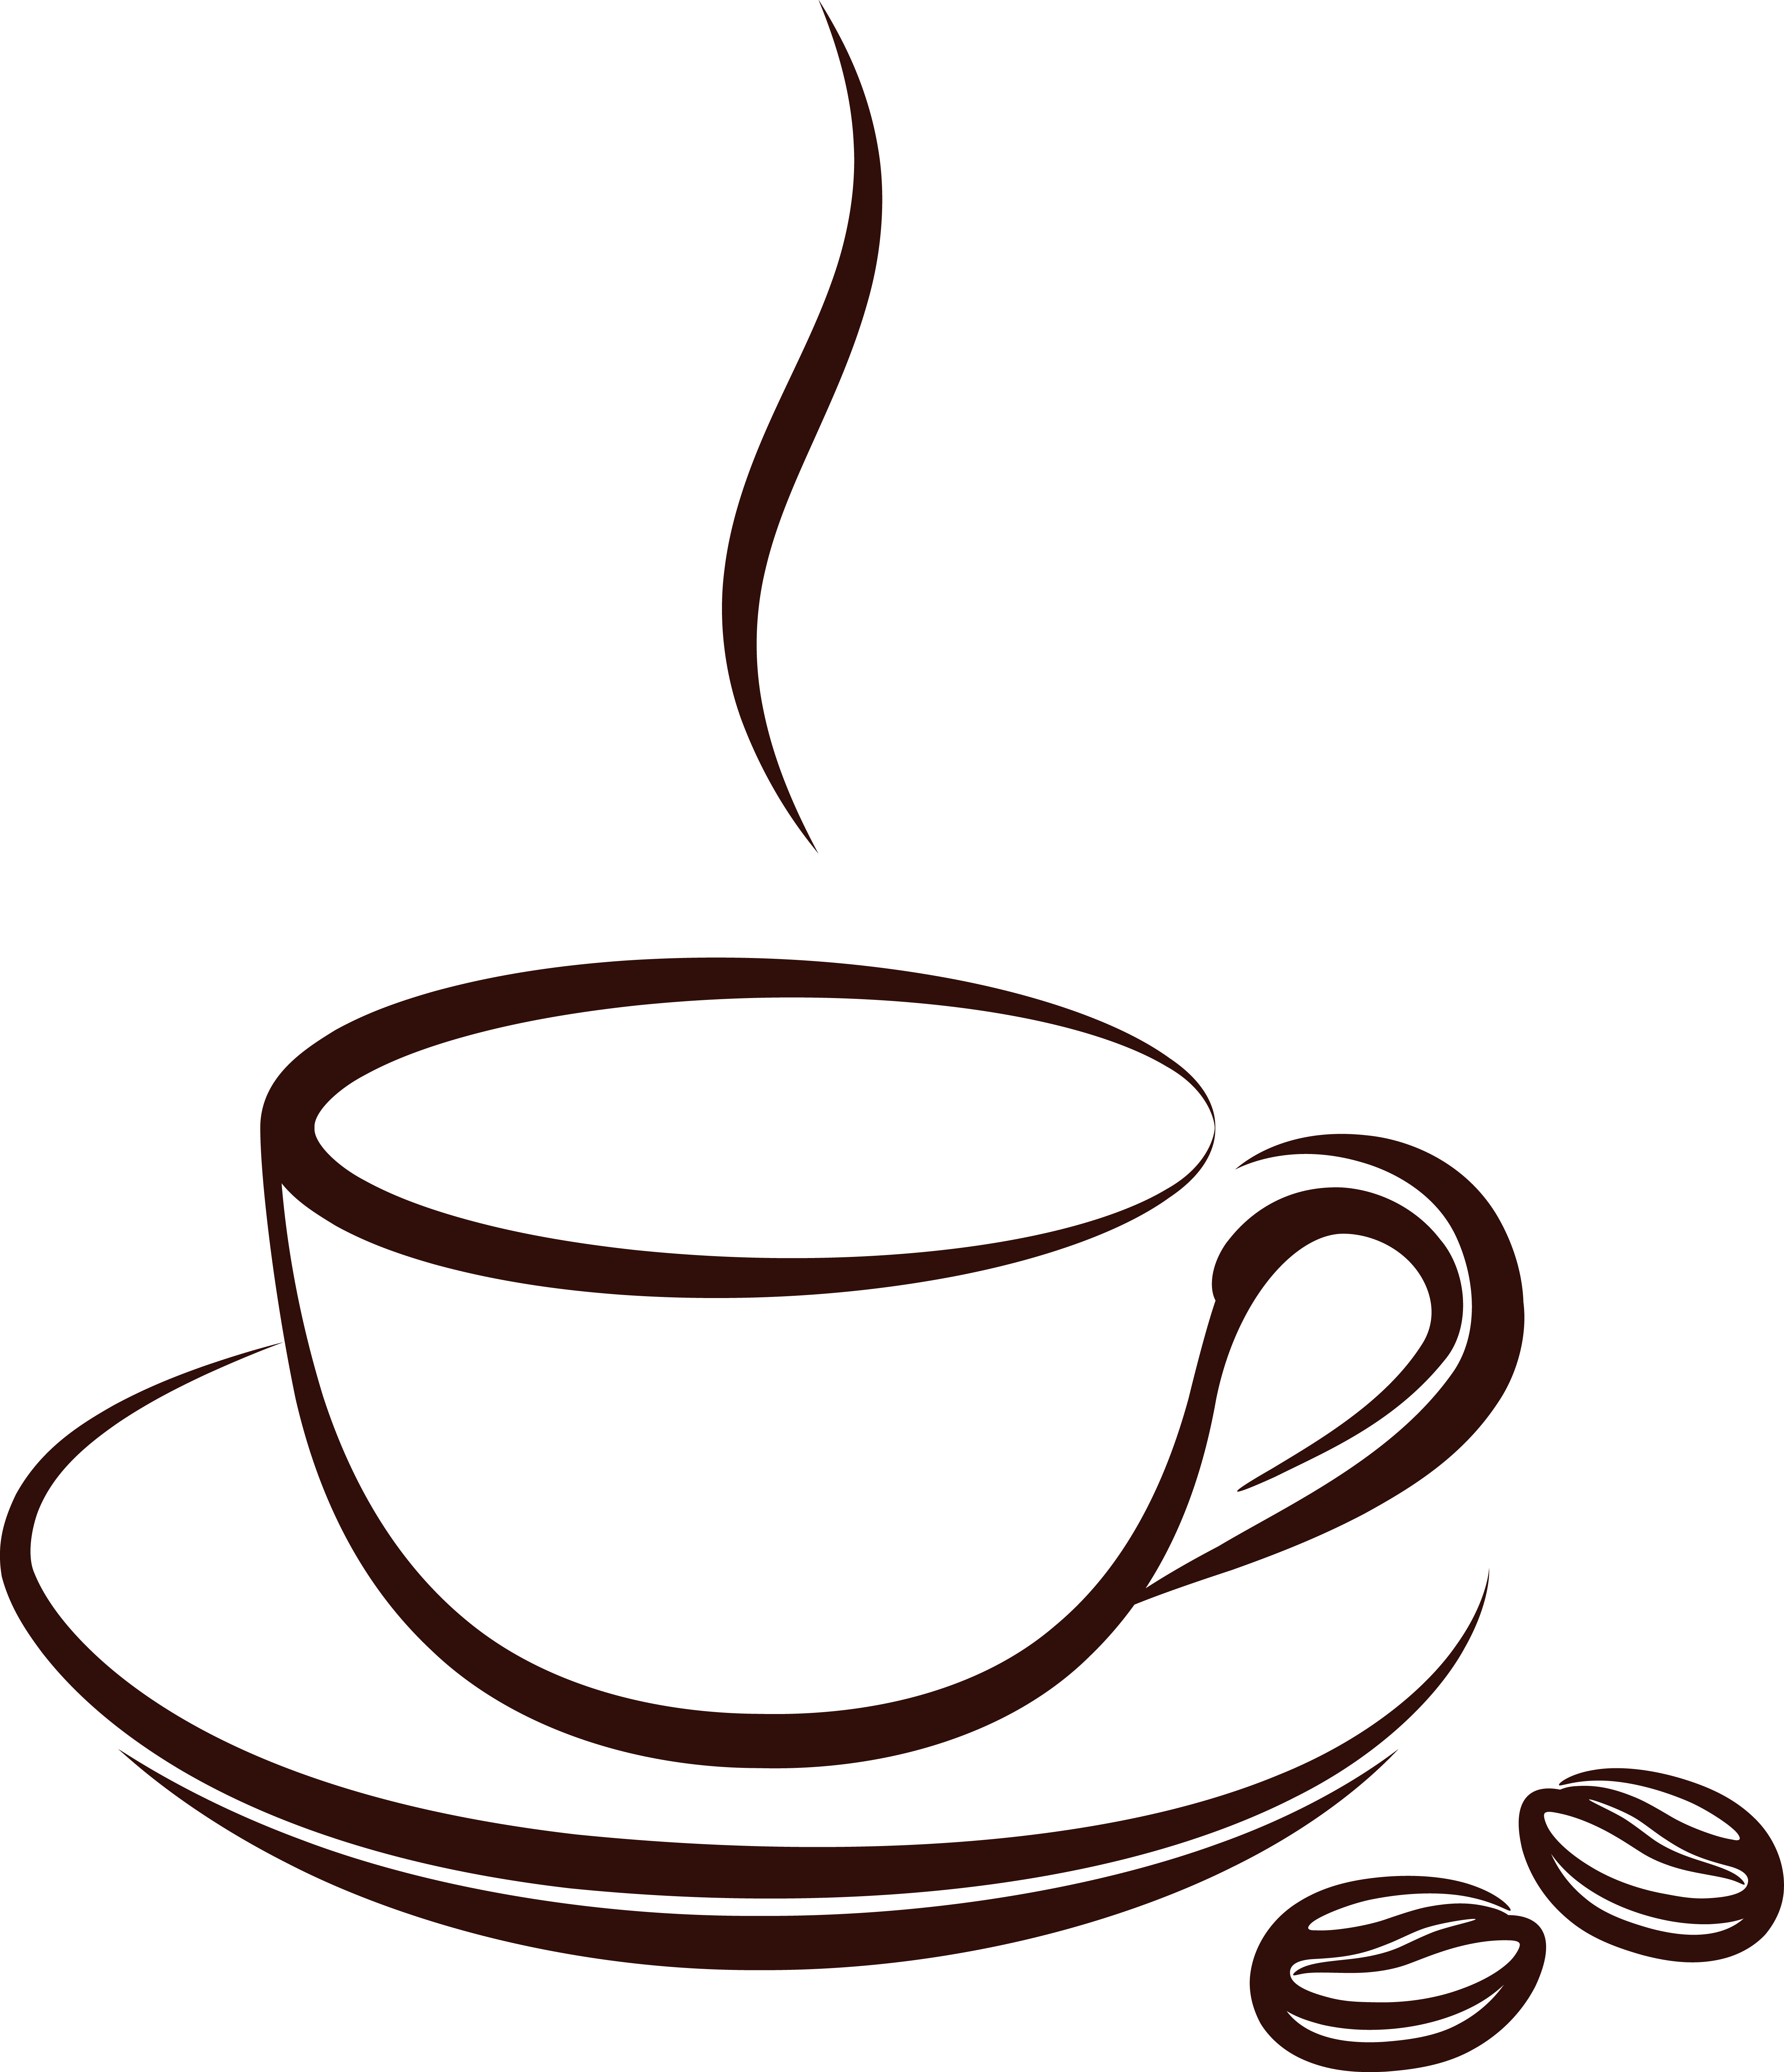 Clip Art Cup Of Coffee Clipart cup of coffee clipart best tumundografico